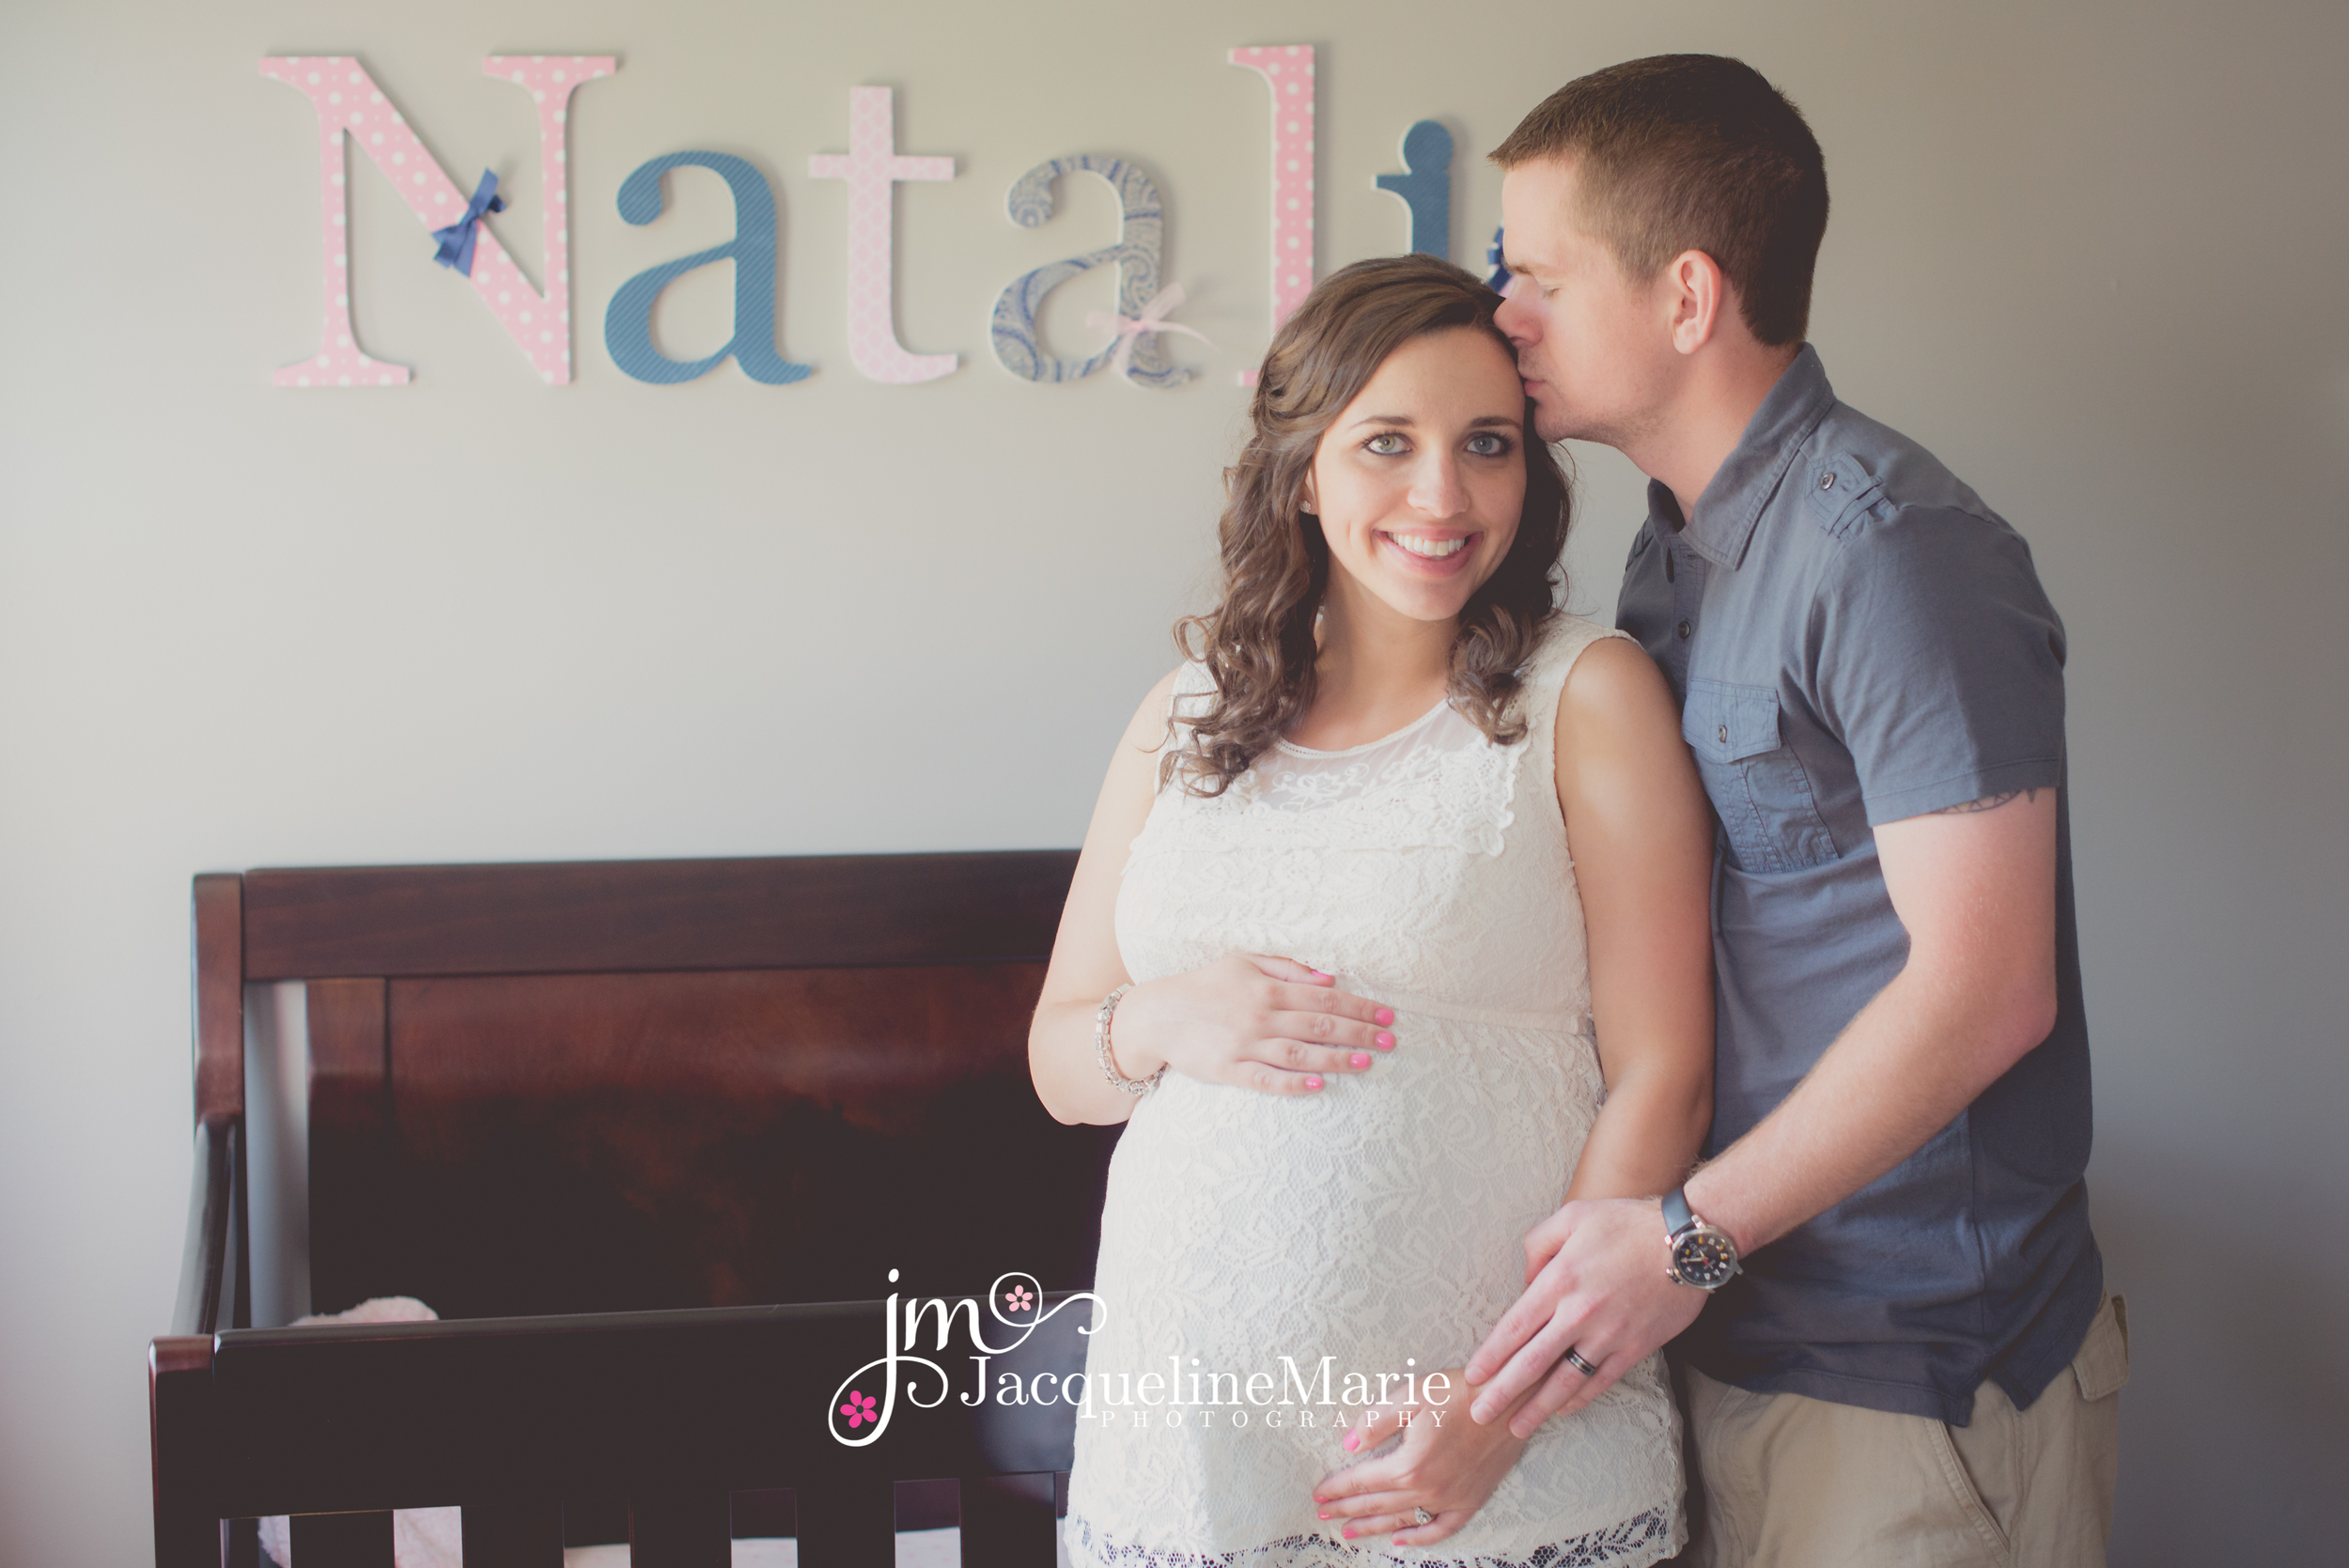 Jacqueline Marie Photography | Columbus, OH Maternity Photographer | Maternity Photography